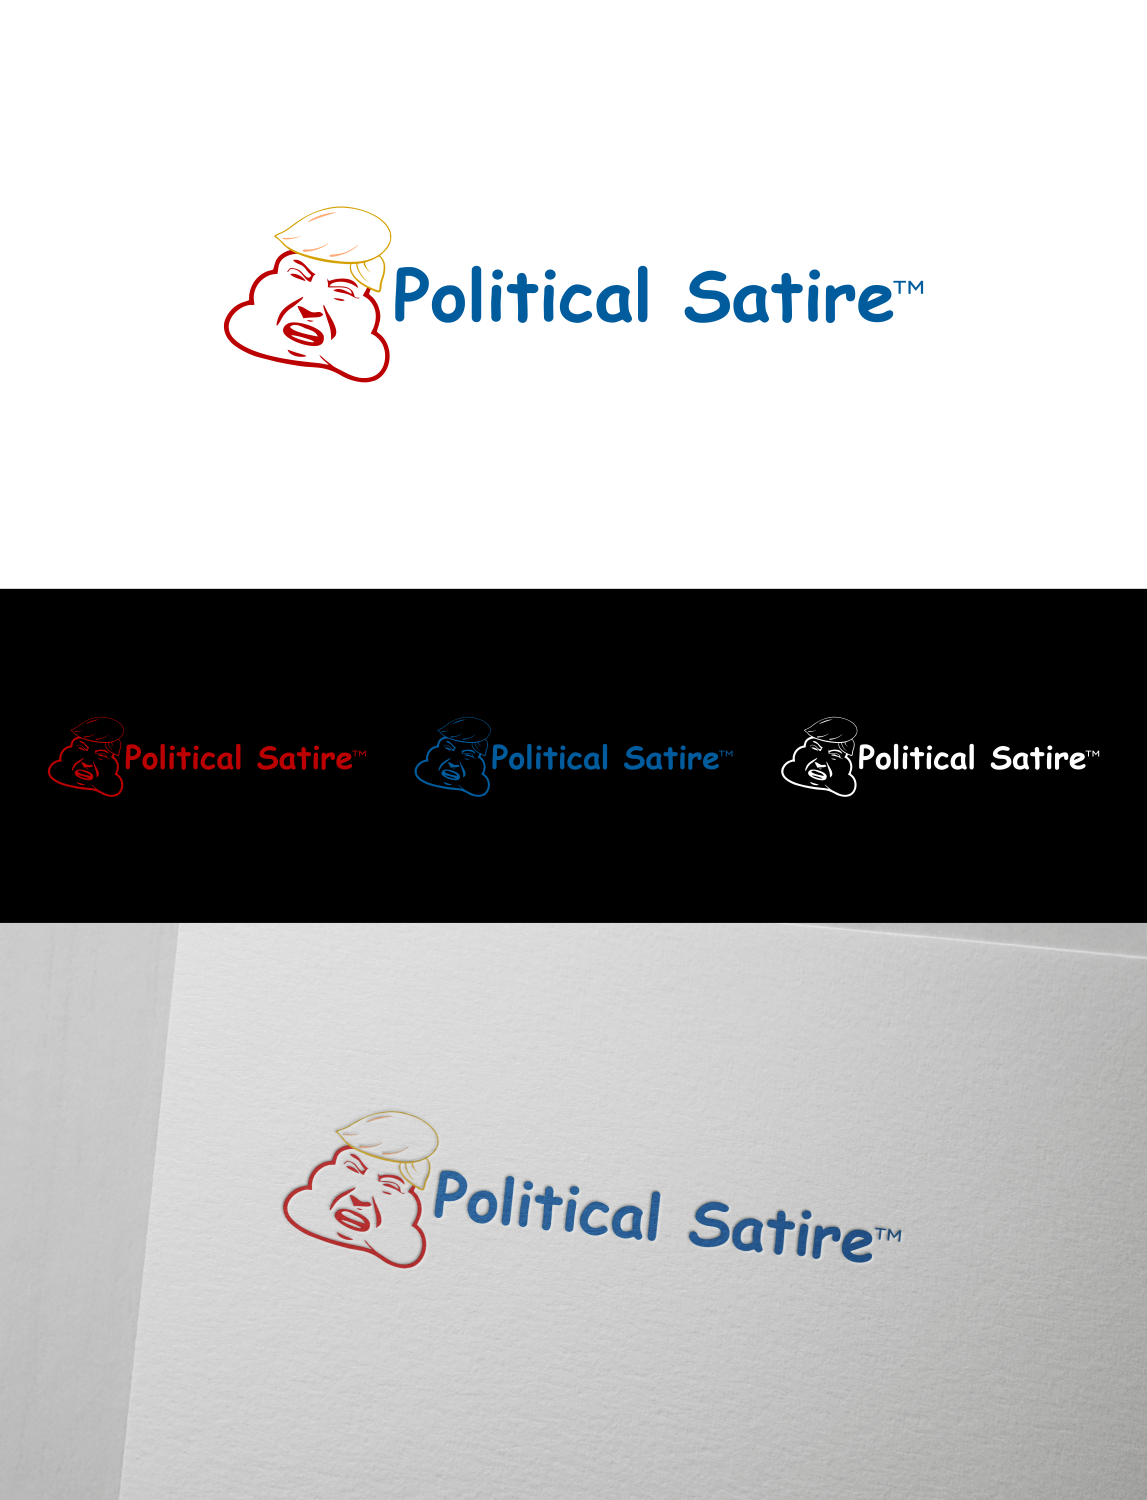 Playful Personable Logo Design For Political Satire By Sitimwp